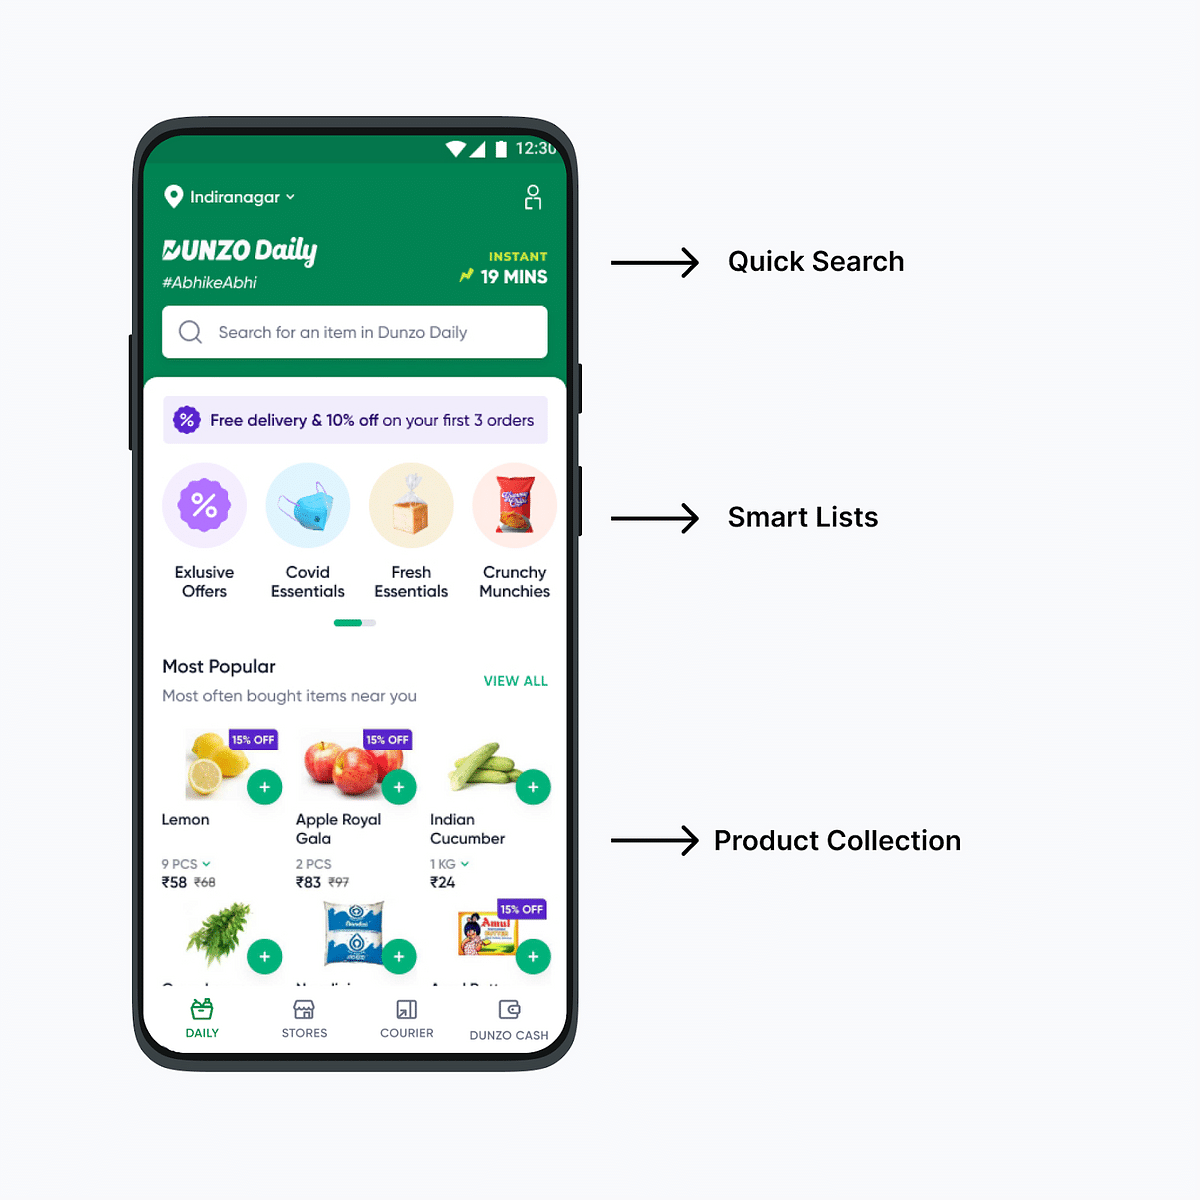 Where to find Dunzo Daily